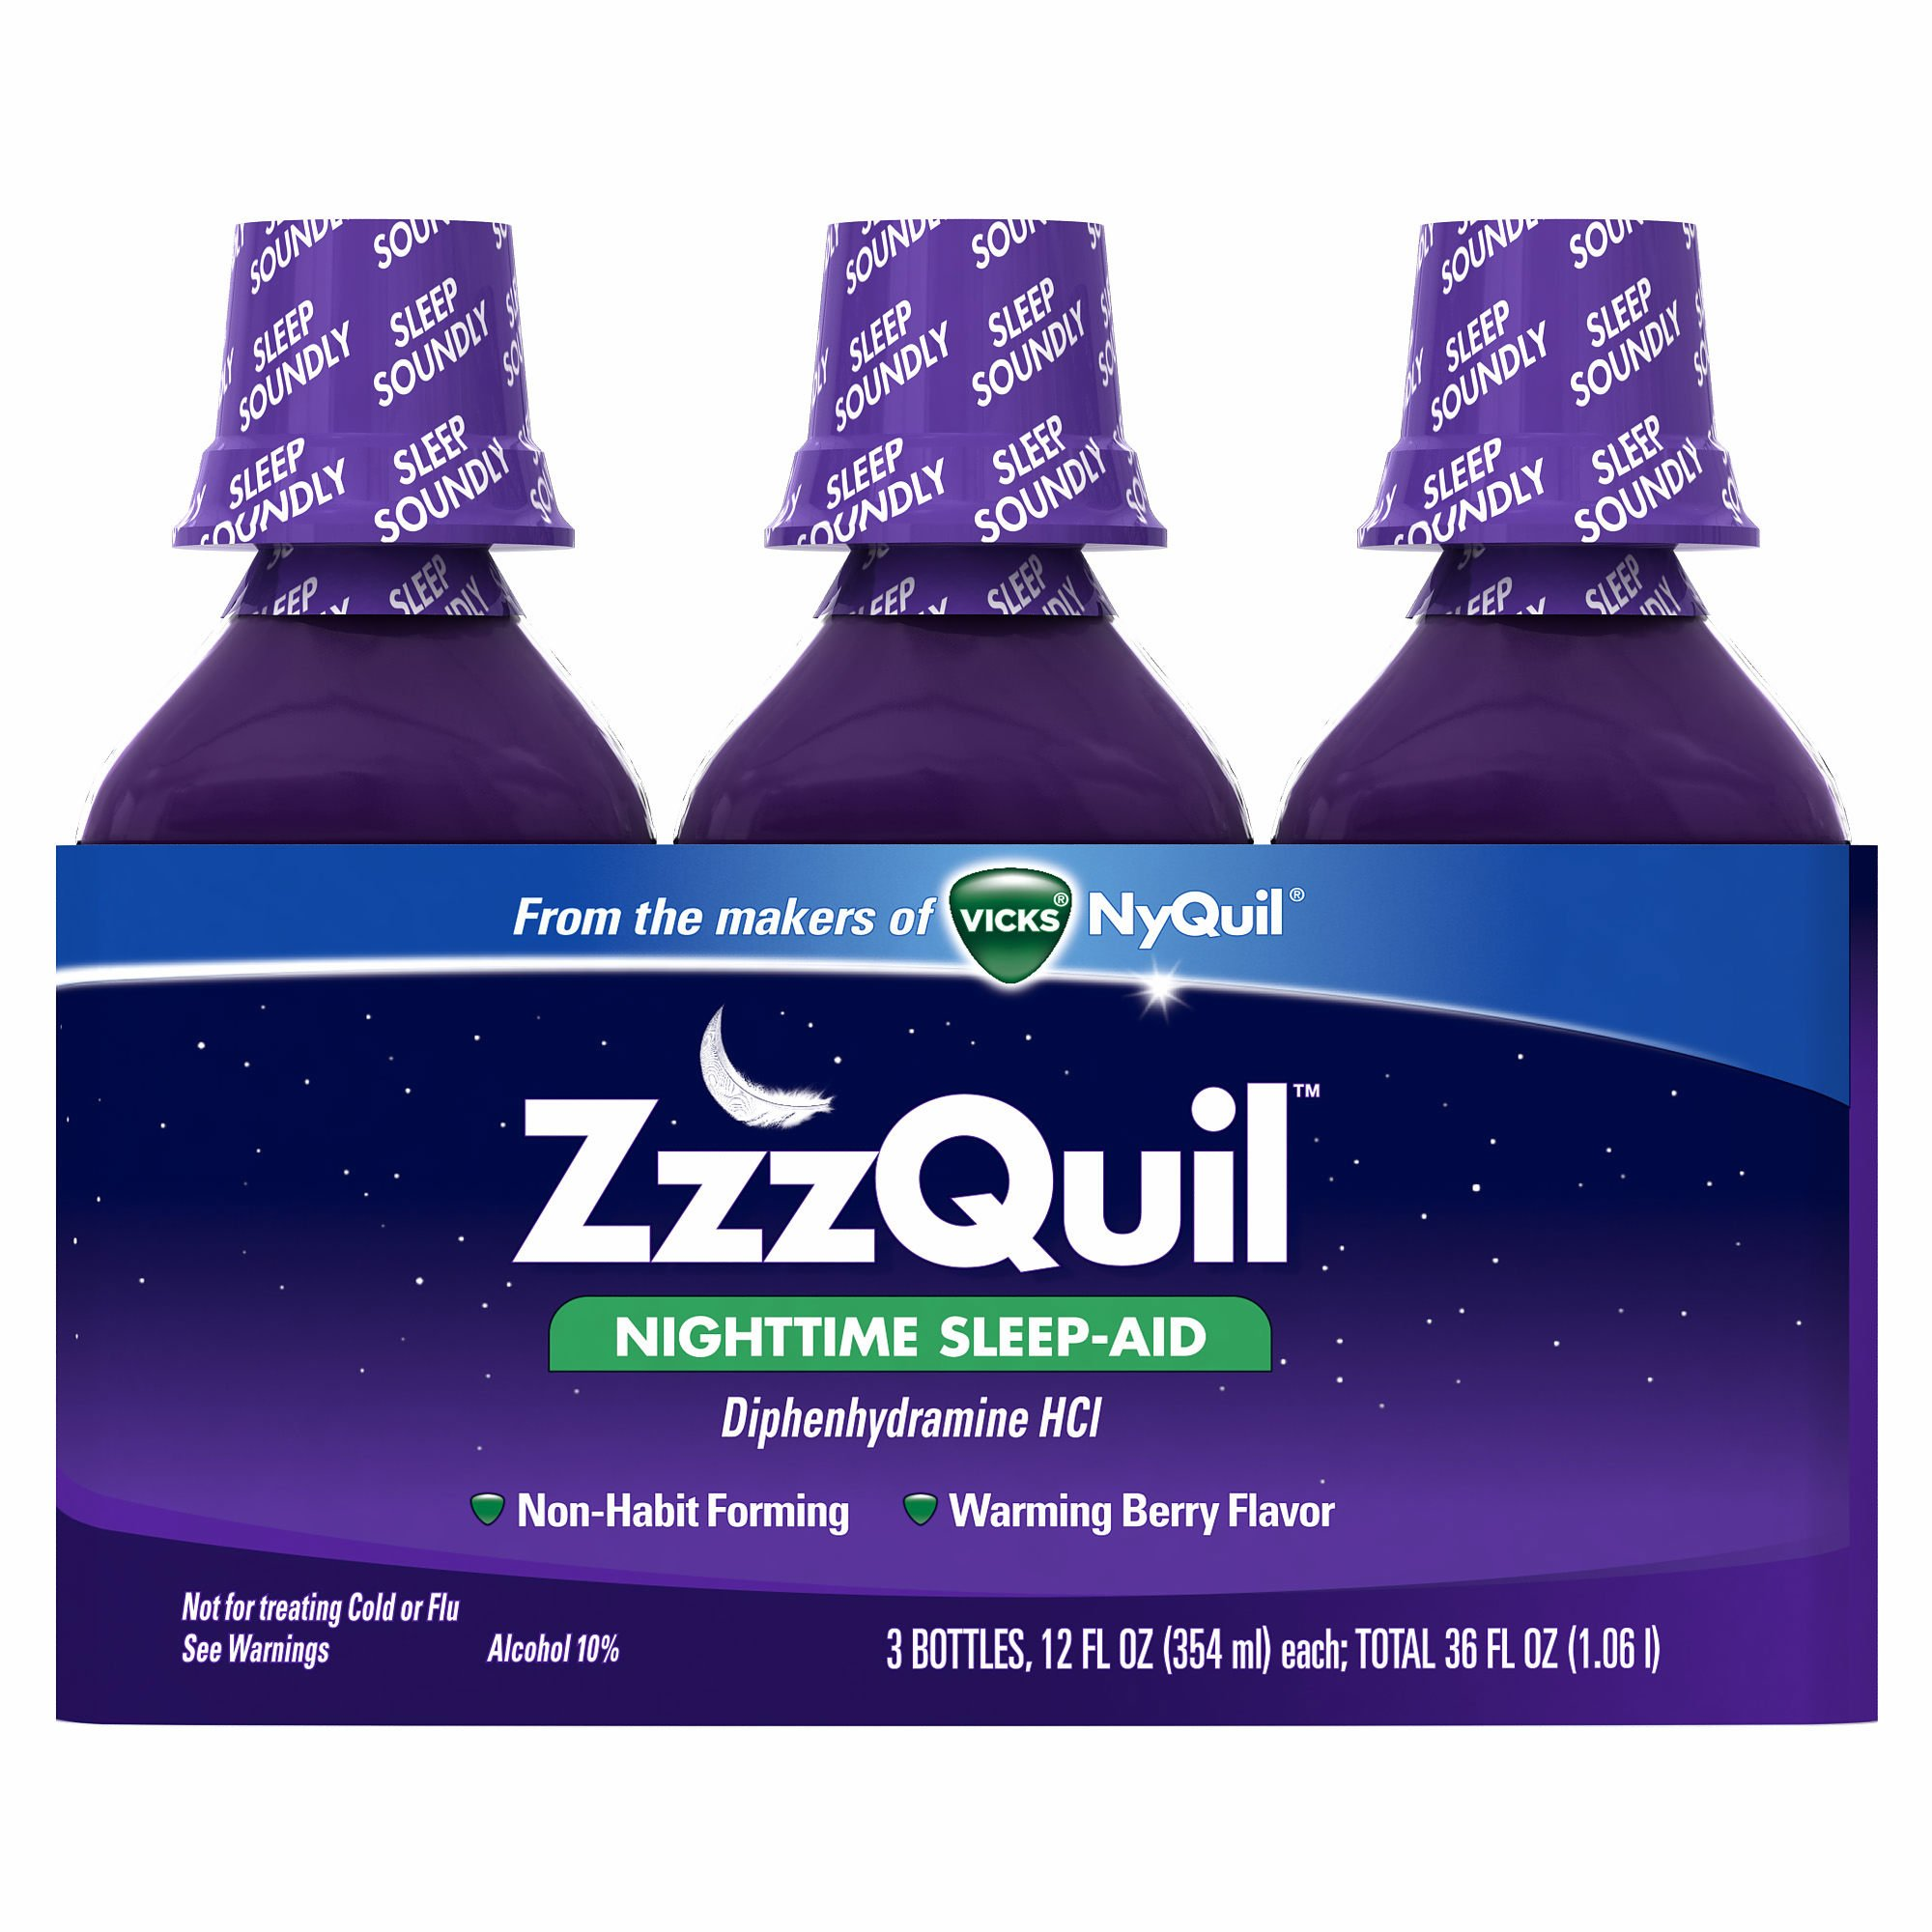 ZzzQuil Nighttime Sleep-Aid Liquid Warming Berry Flavor, 36 oz. (pack of 6)